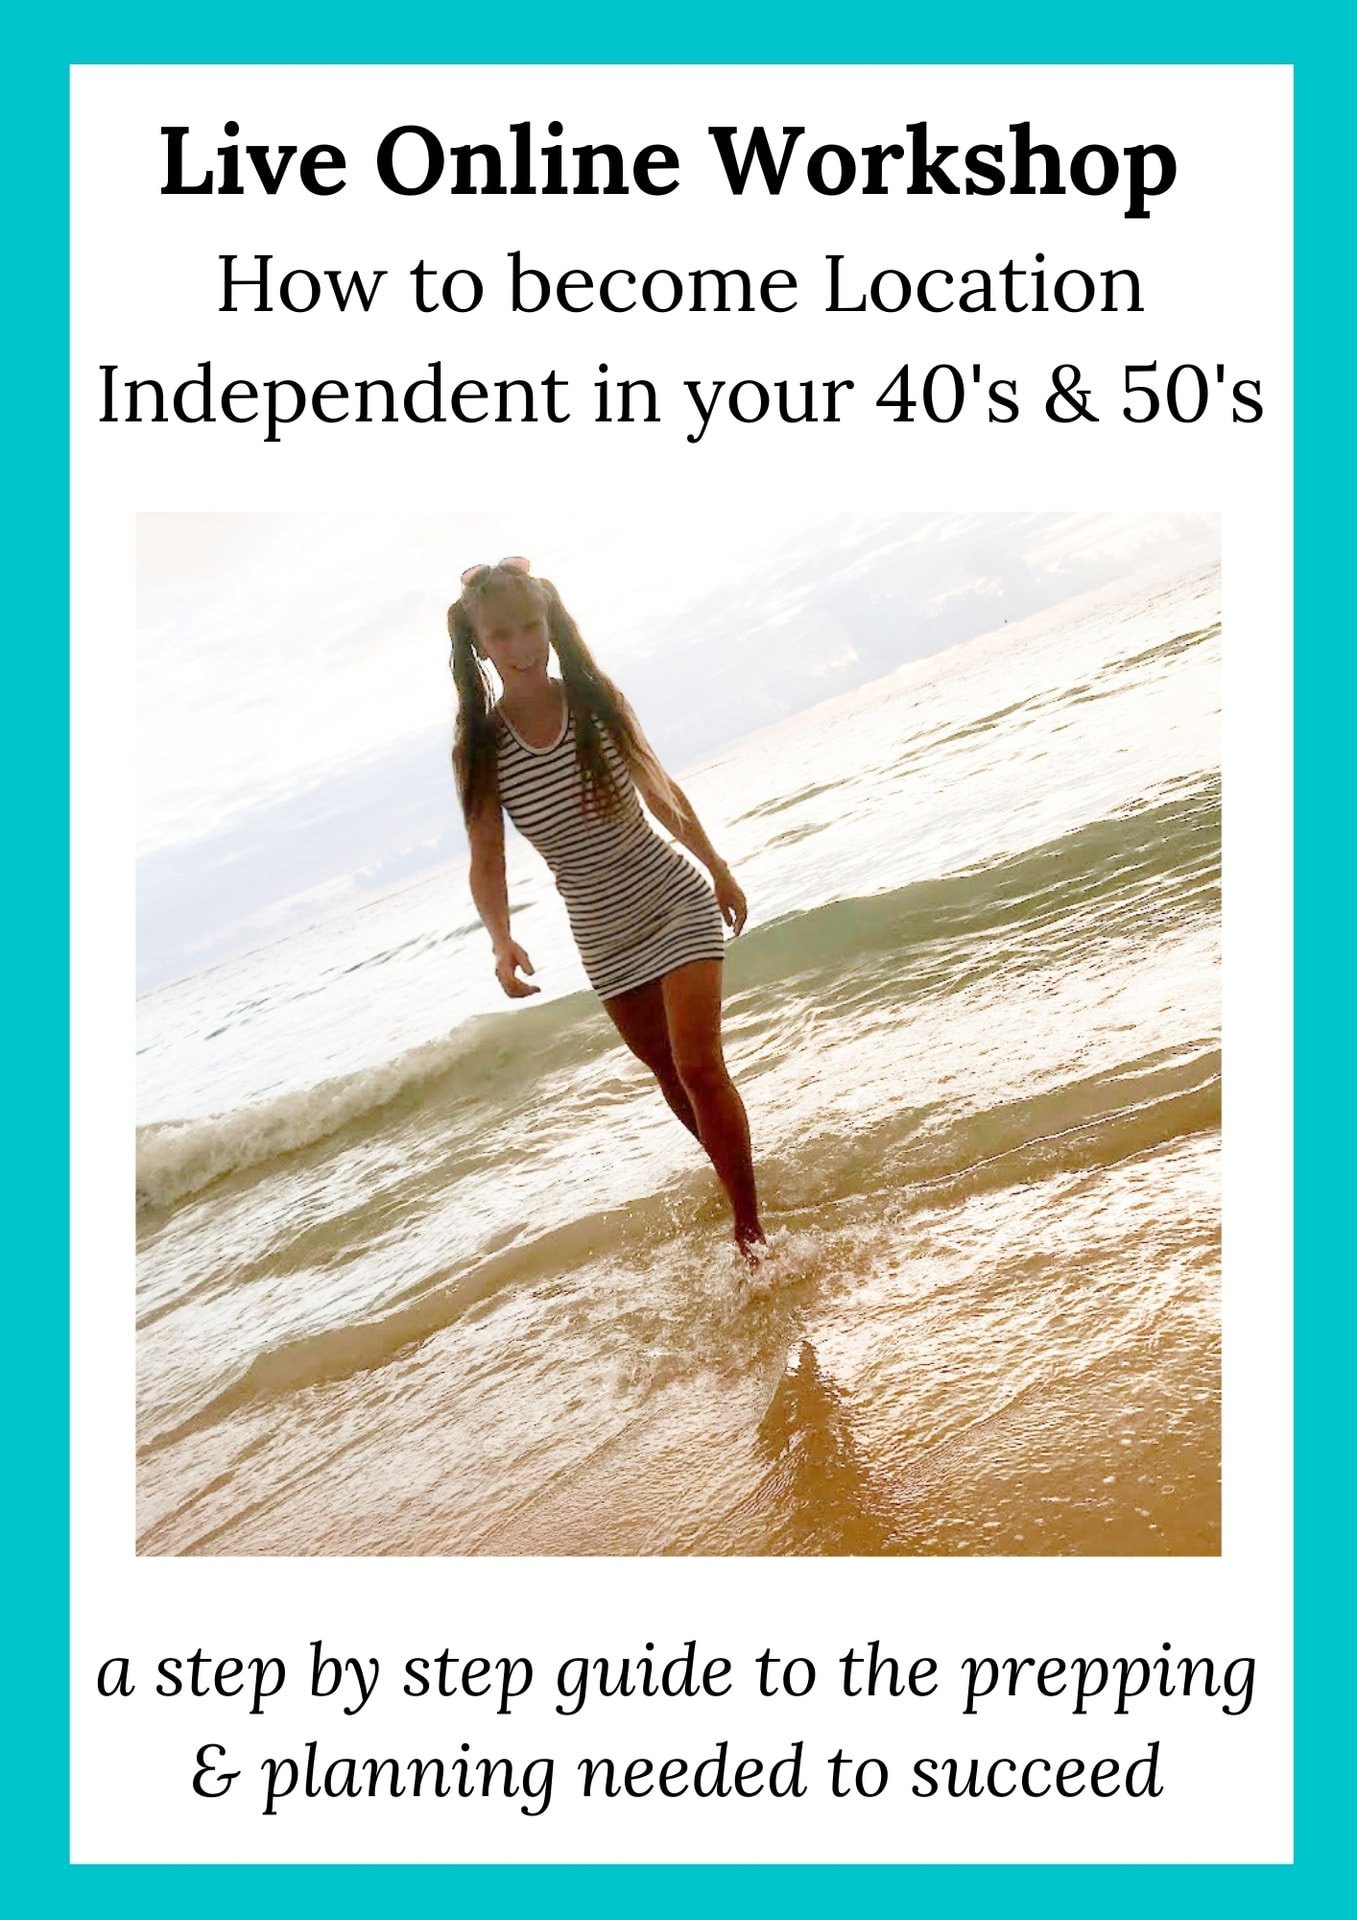 Travel With Tegan Live Online Workshop About Becoming Location Independent In Your 40s And 50s